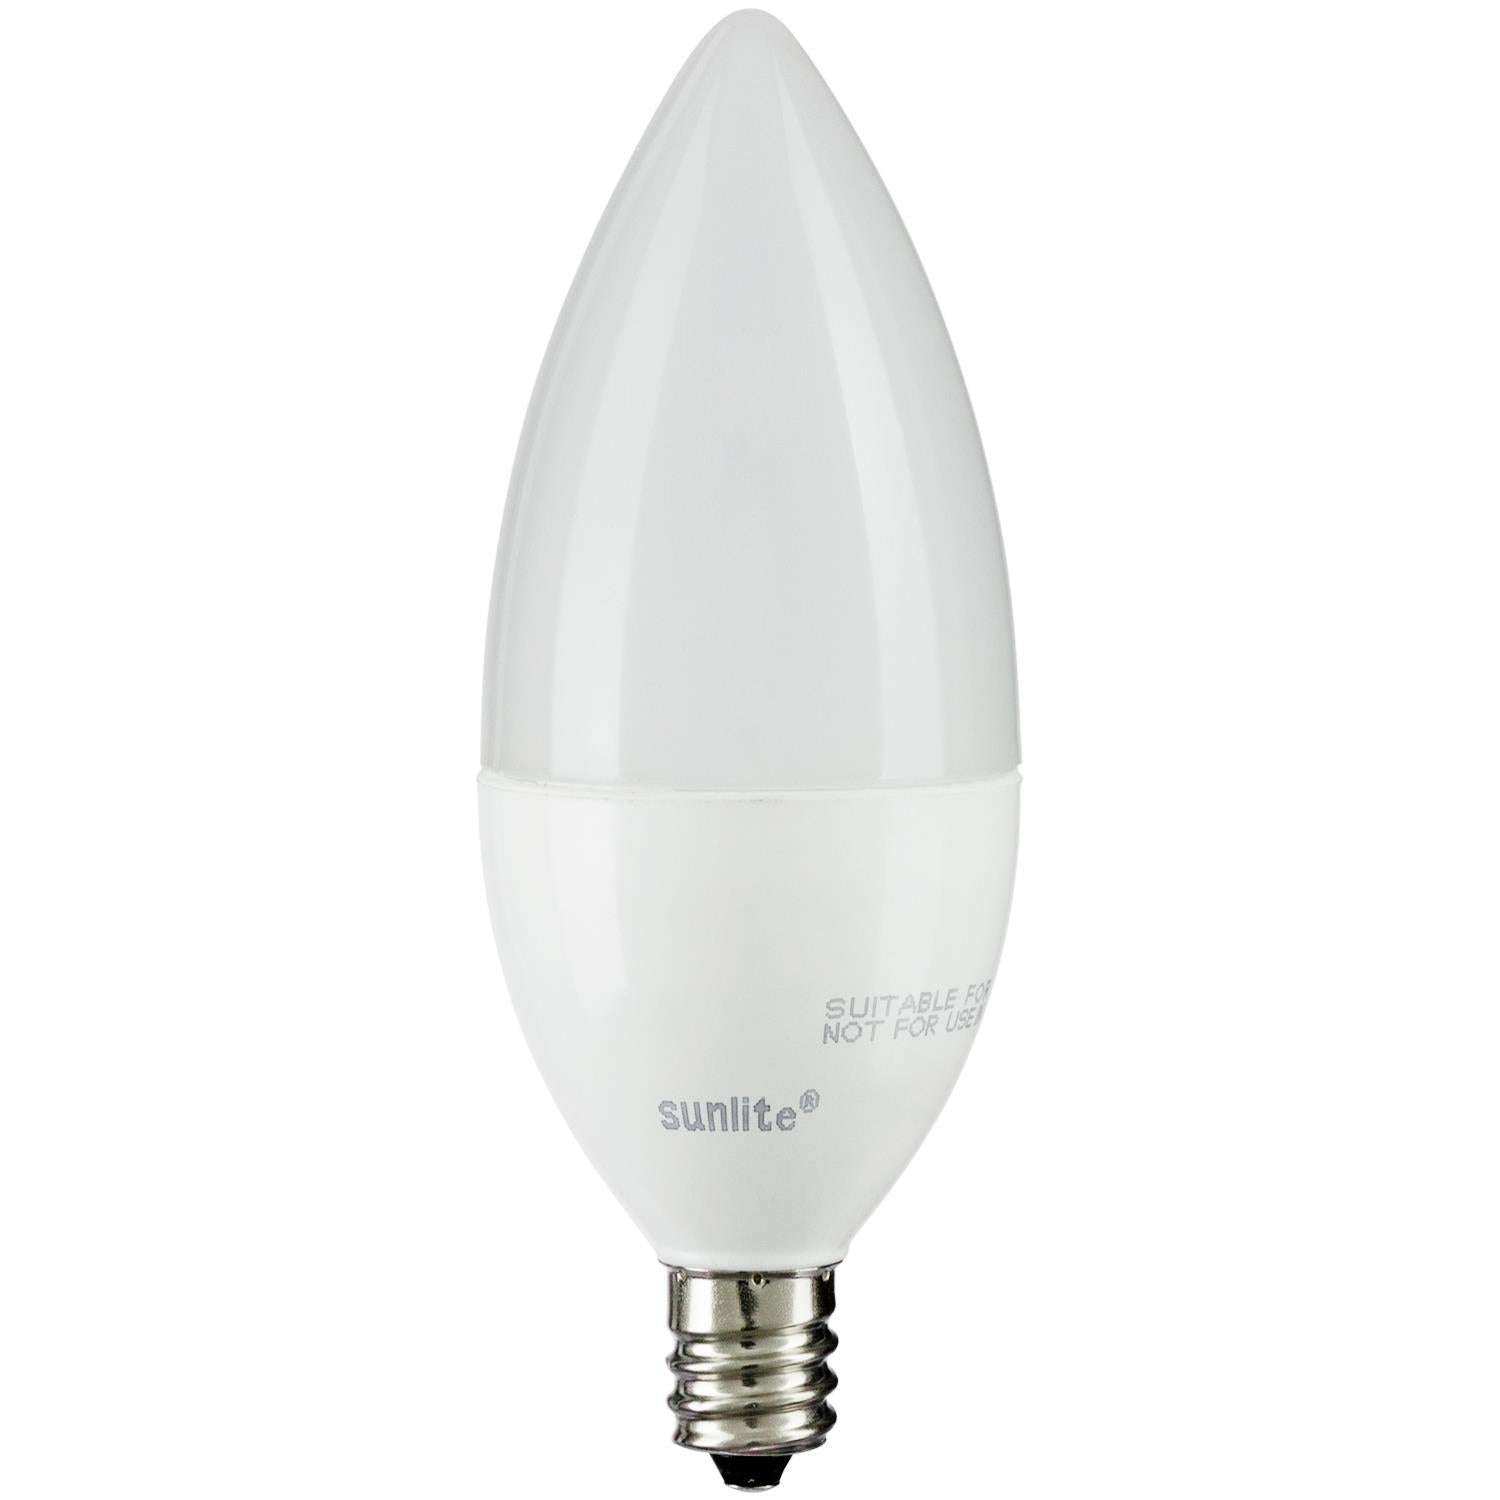 SUNLITE 80771-SU LED Torpedo Tip Chandelier 5w Light Bulb 2700K Soft White